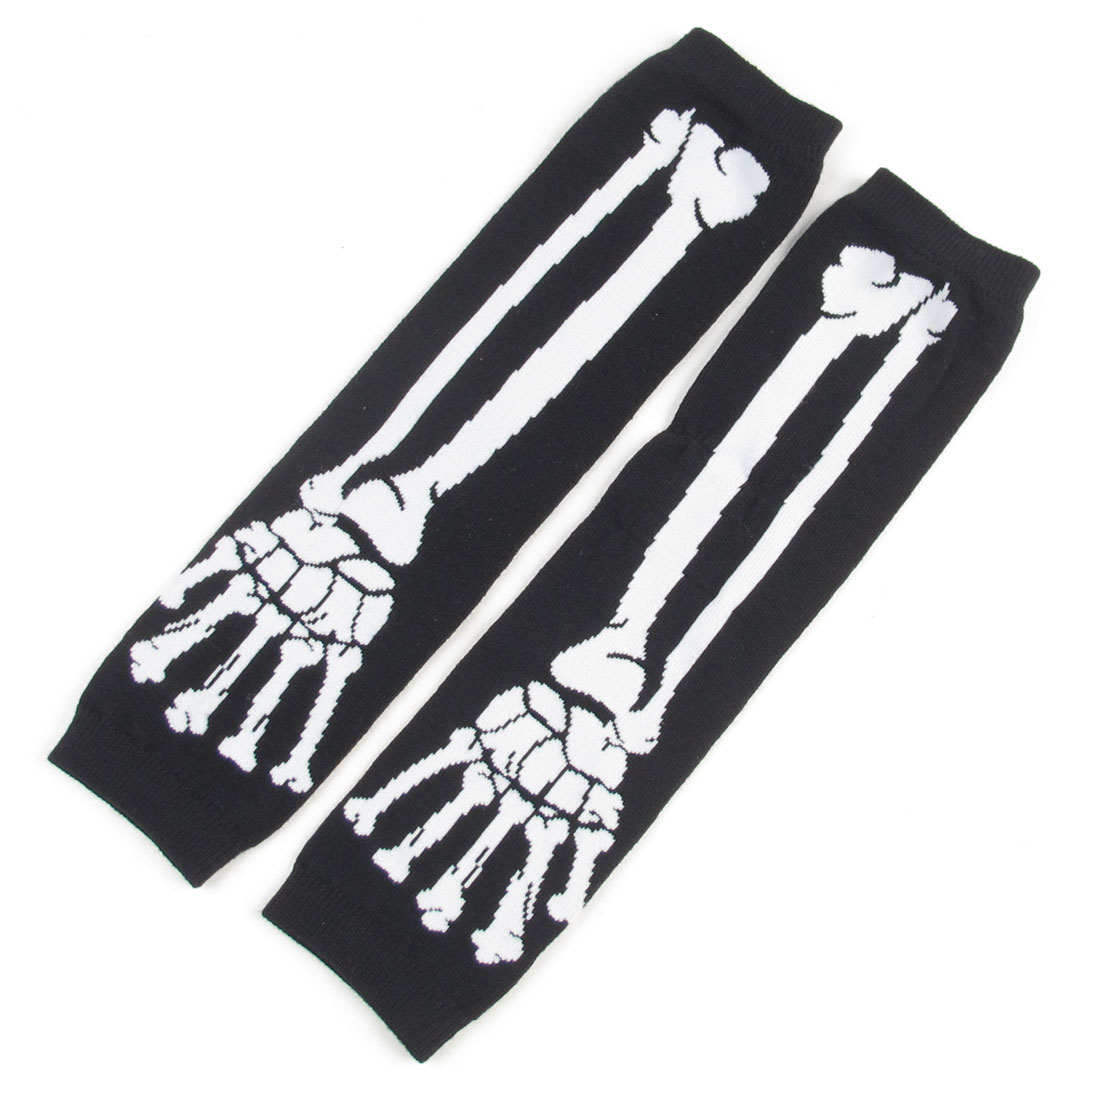 Pair Ladies White Skeleton Hand Print Black Knitted Arm Warmers Gloves